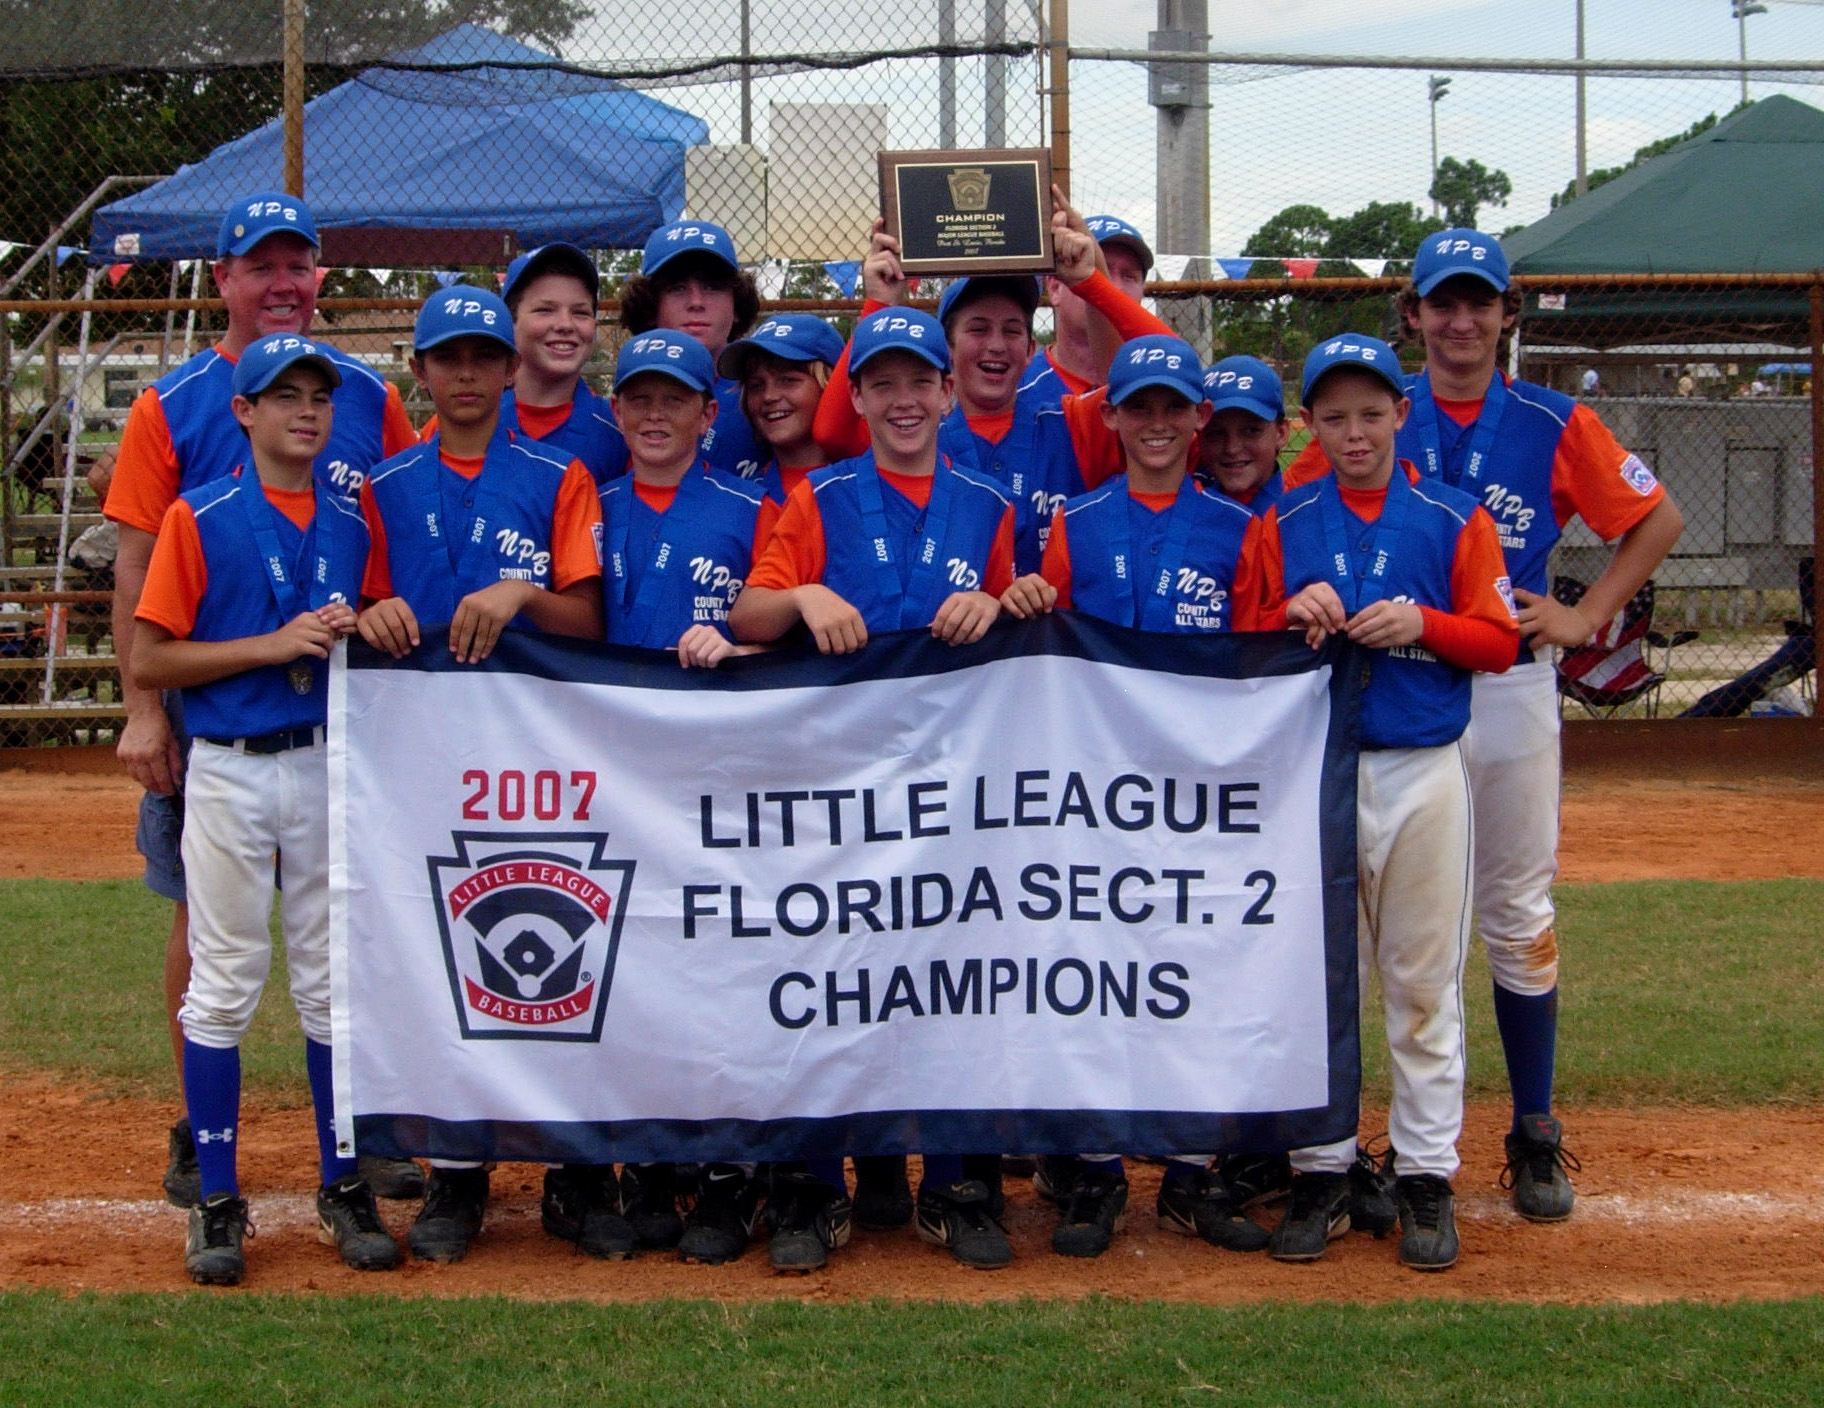 2007 North Palm Beach Little League Championship team in red and blue uniforms holding banner